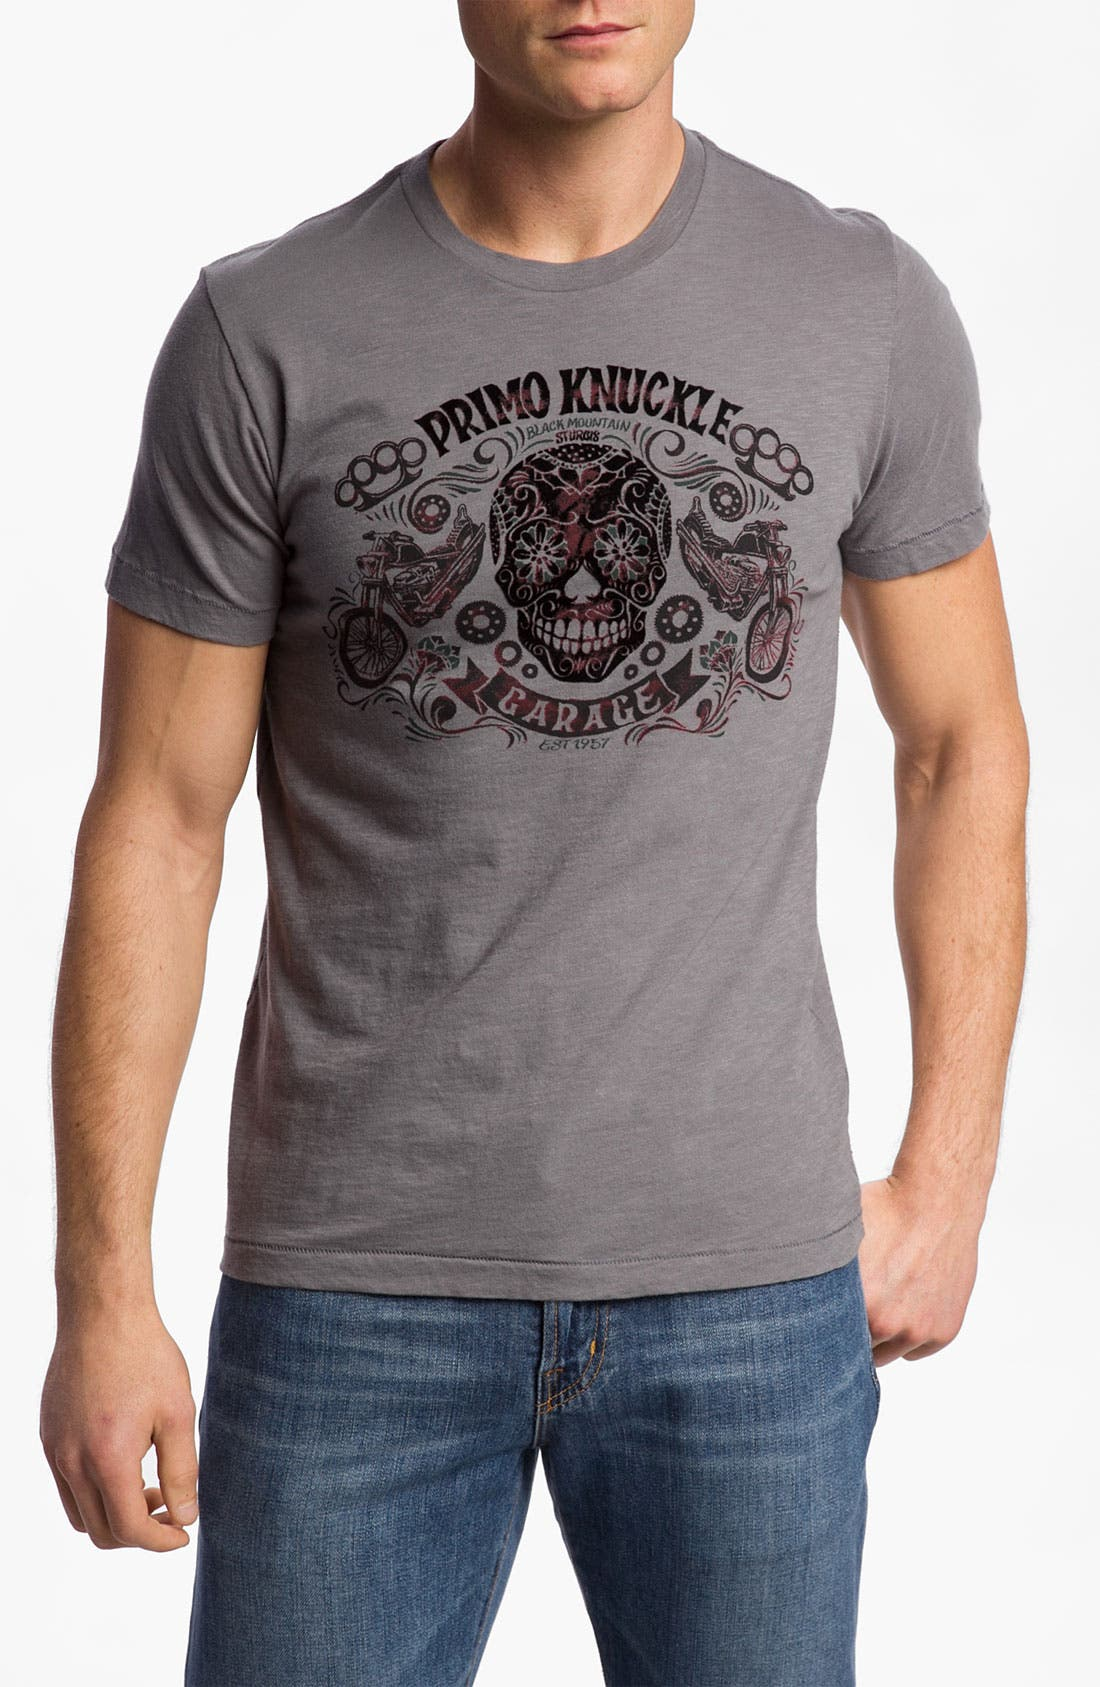 Main Image - Lucky Brand 'Primo Knuckle' T-Shirt